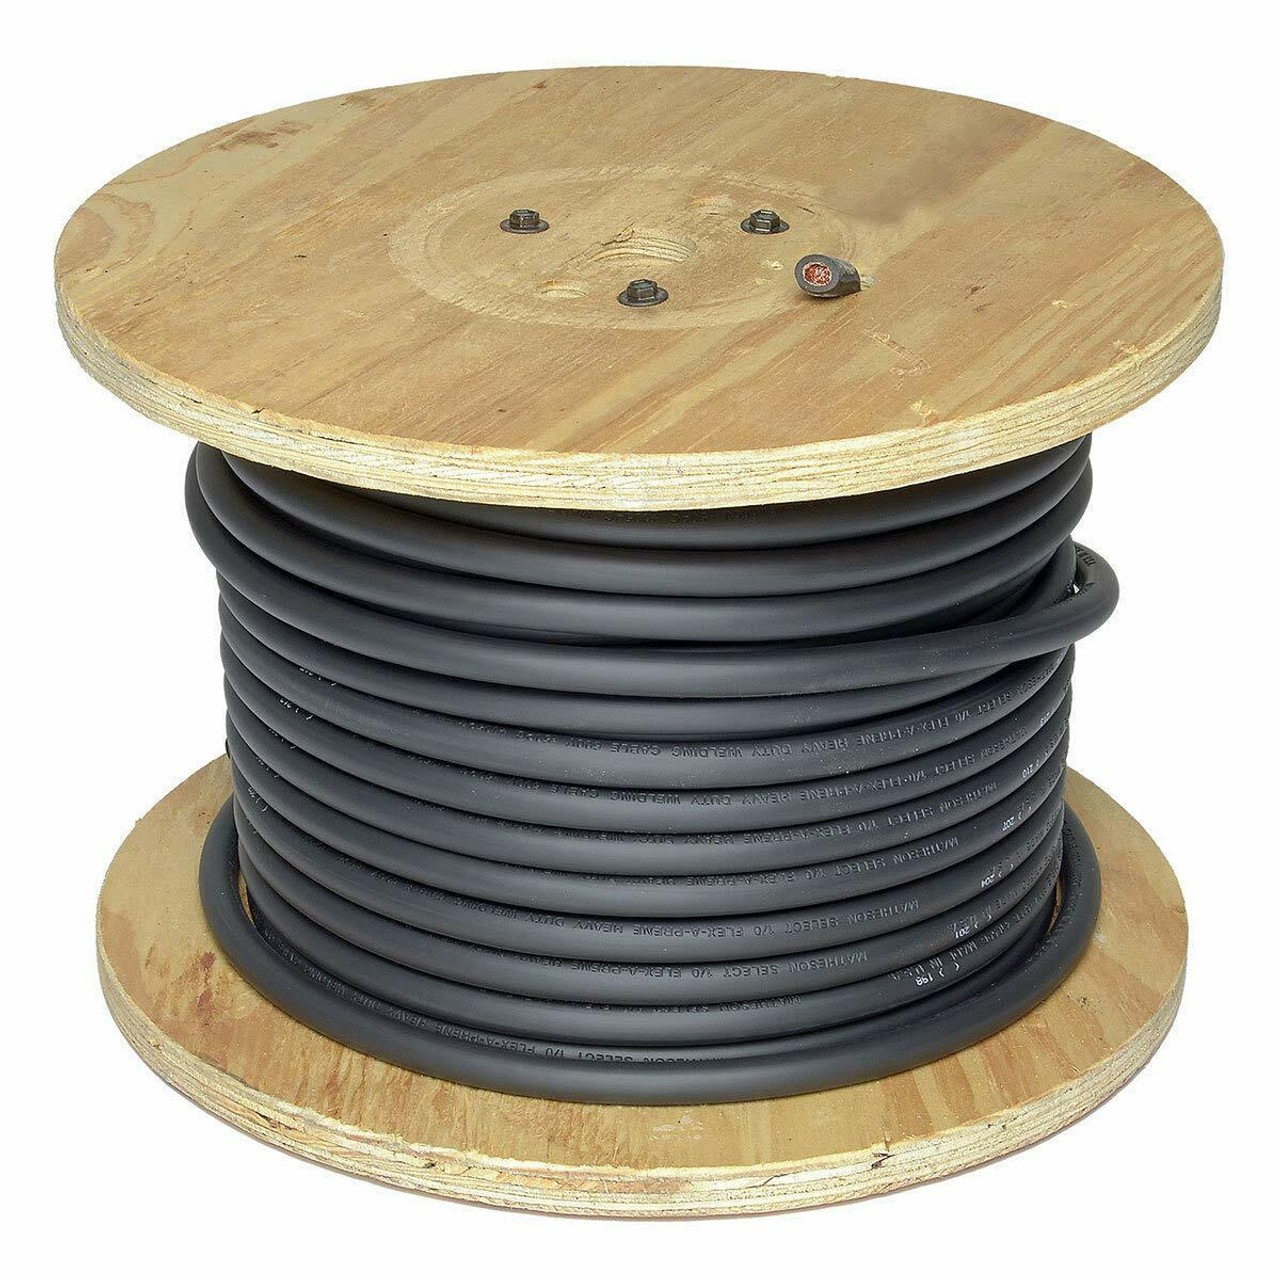 500 Foot Spool of Black 1/0 Flex-A-Prene Welding and Battery Cable Made In USA